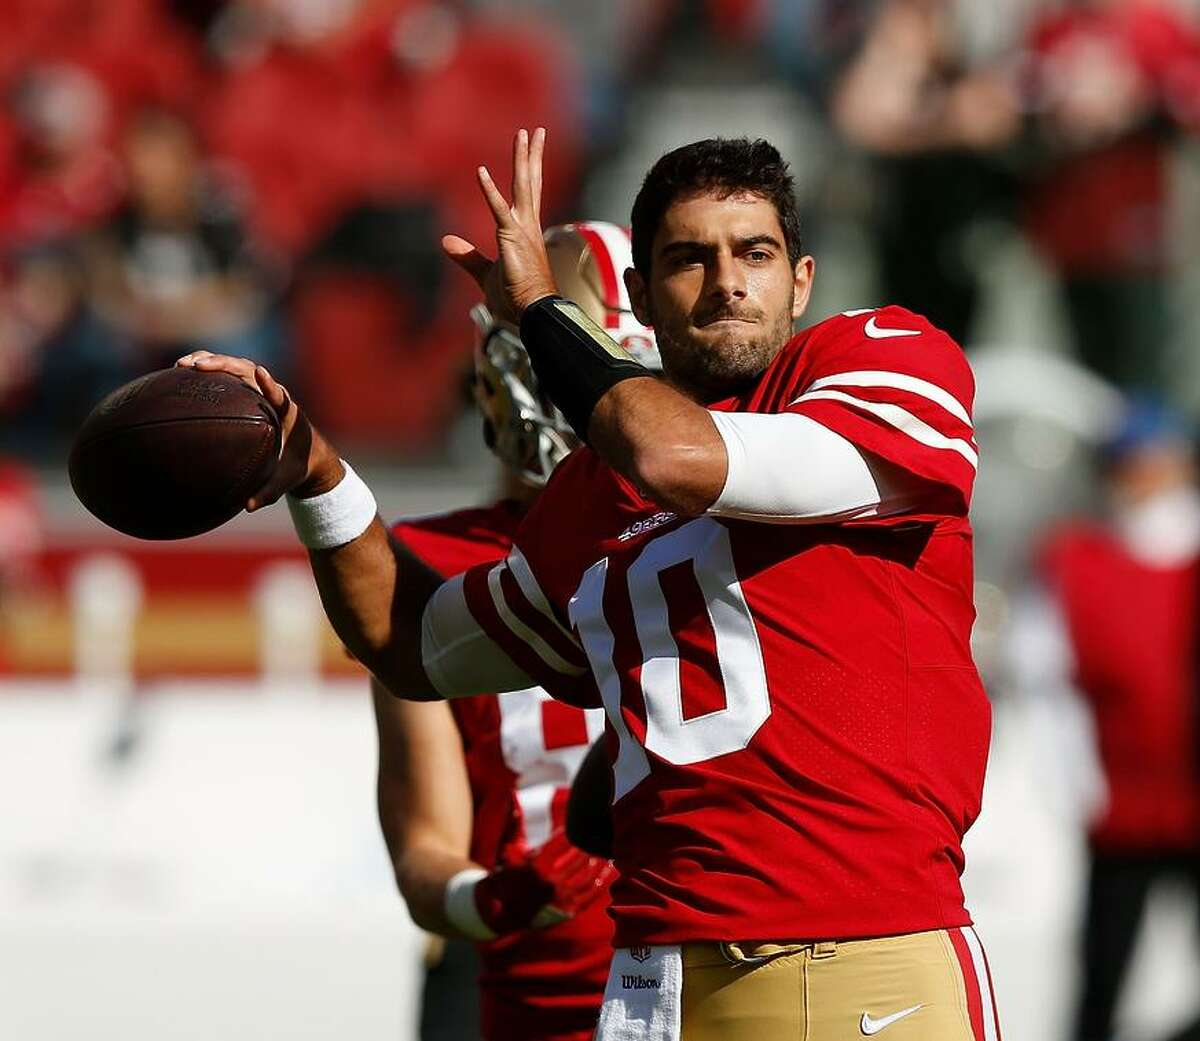 Jimmy Garoppolo has become a sudden celebrity in the Bay Area - and a rich one as well, with a $137.5 million contract.